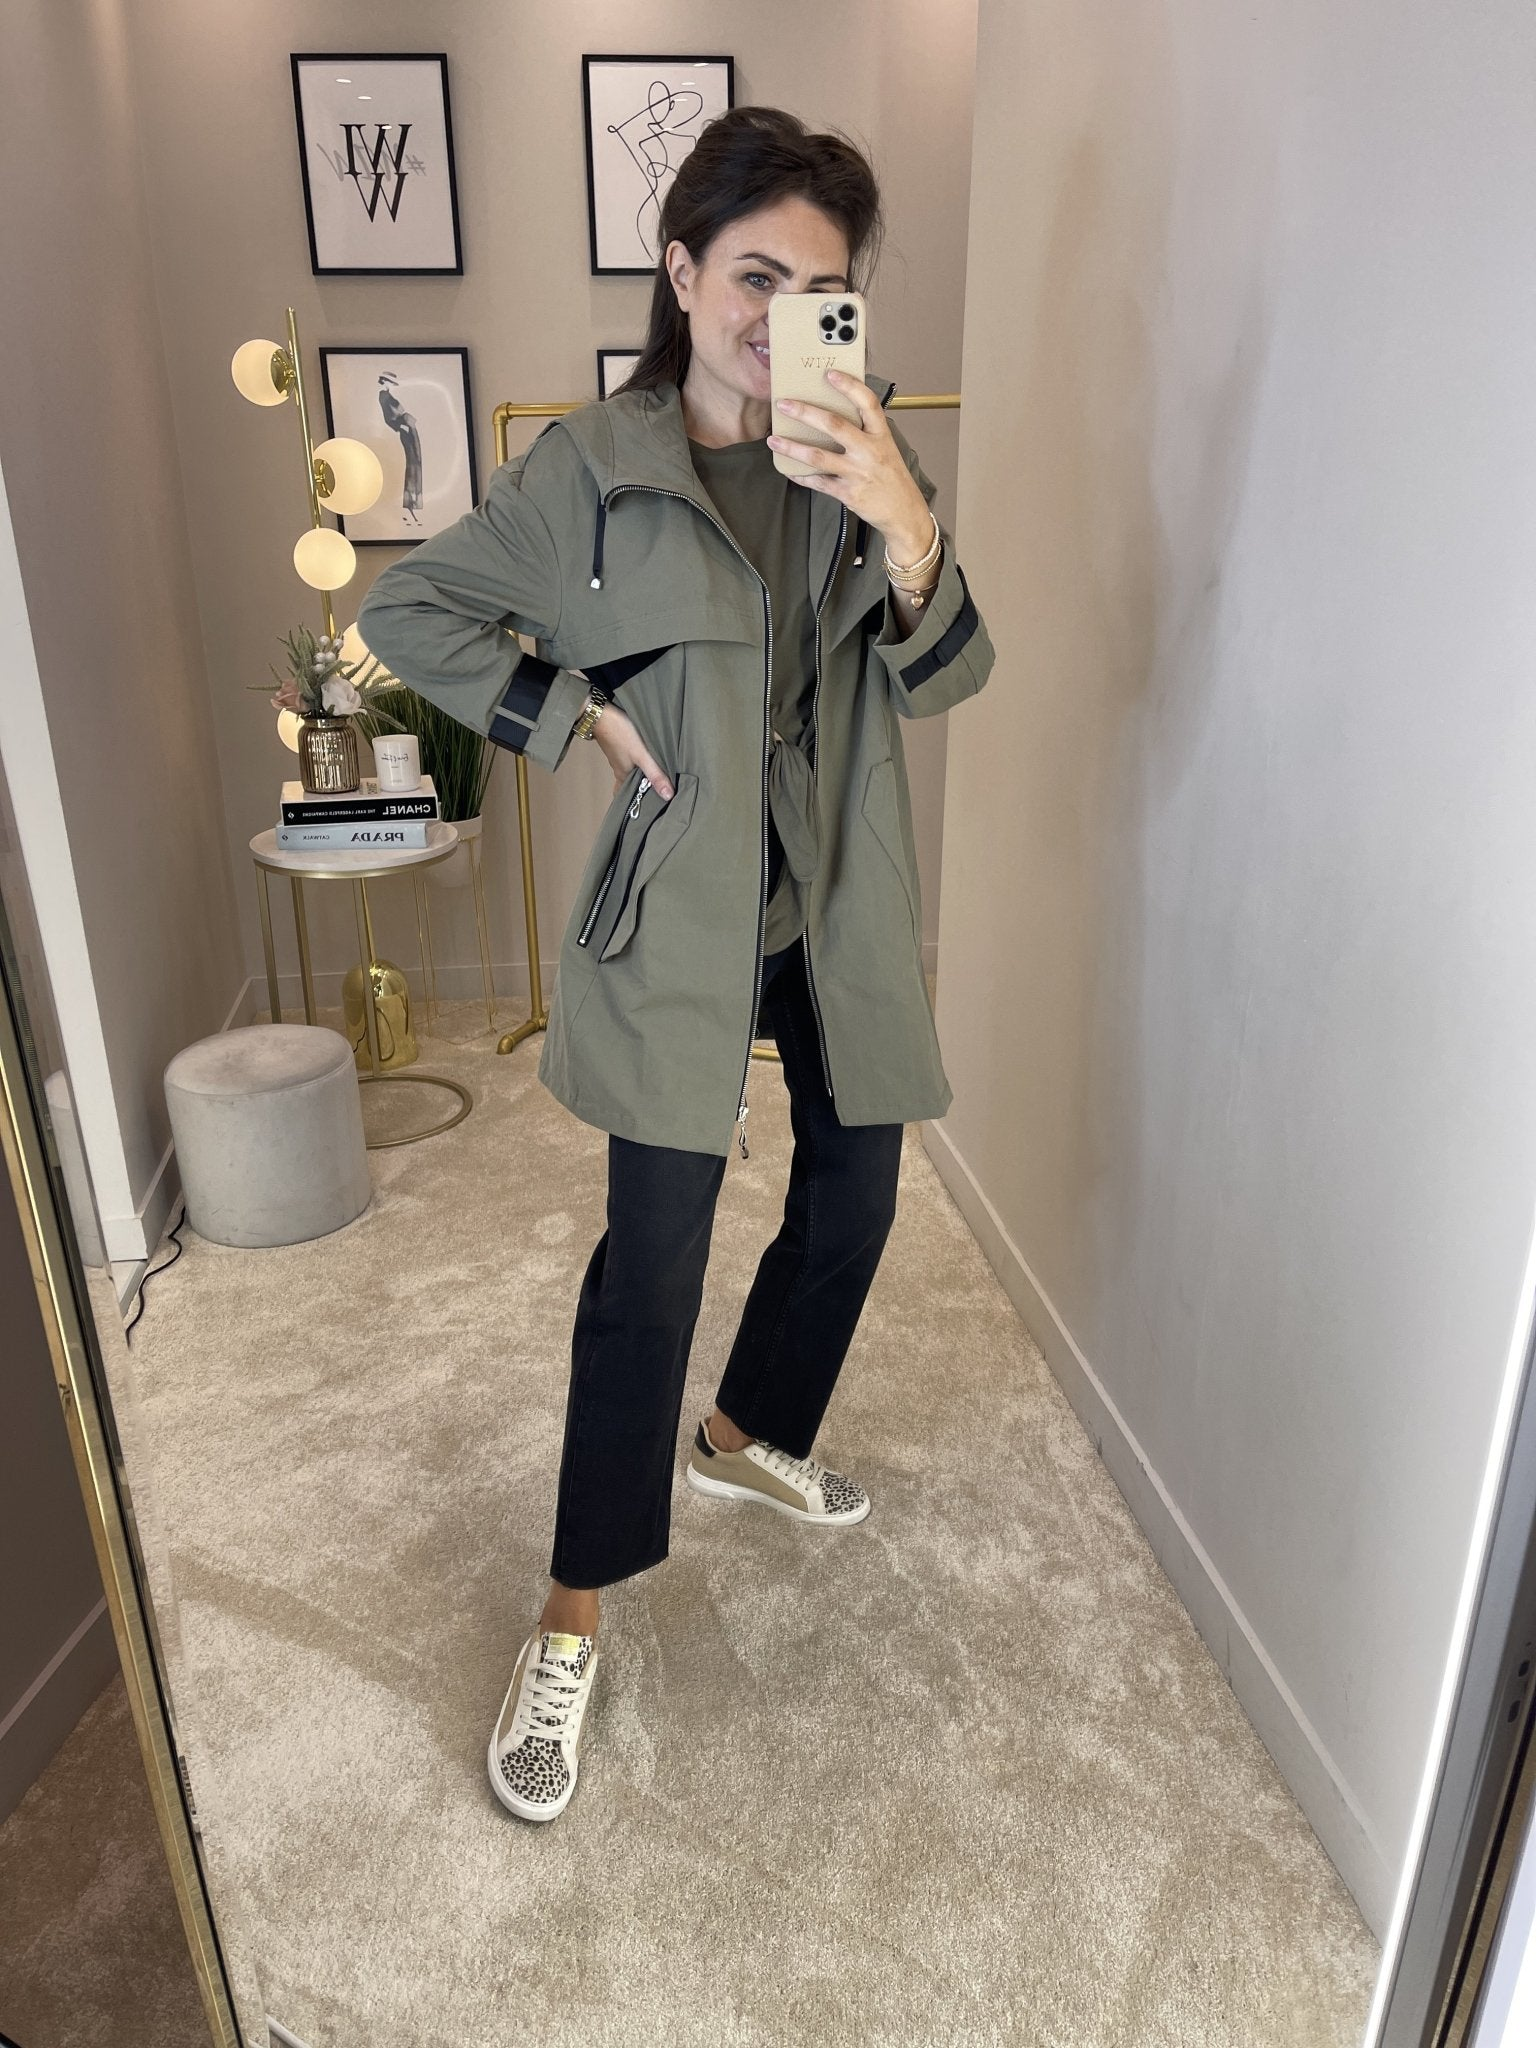 Priya Parka Jacket In Khaki - The Walk in Wardrobe